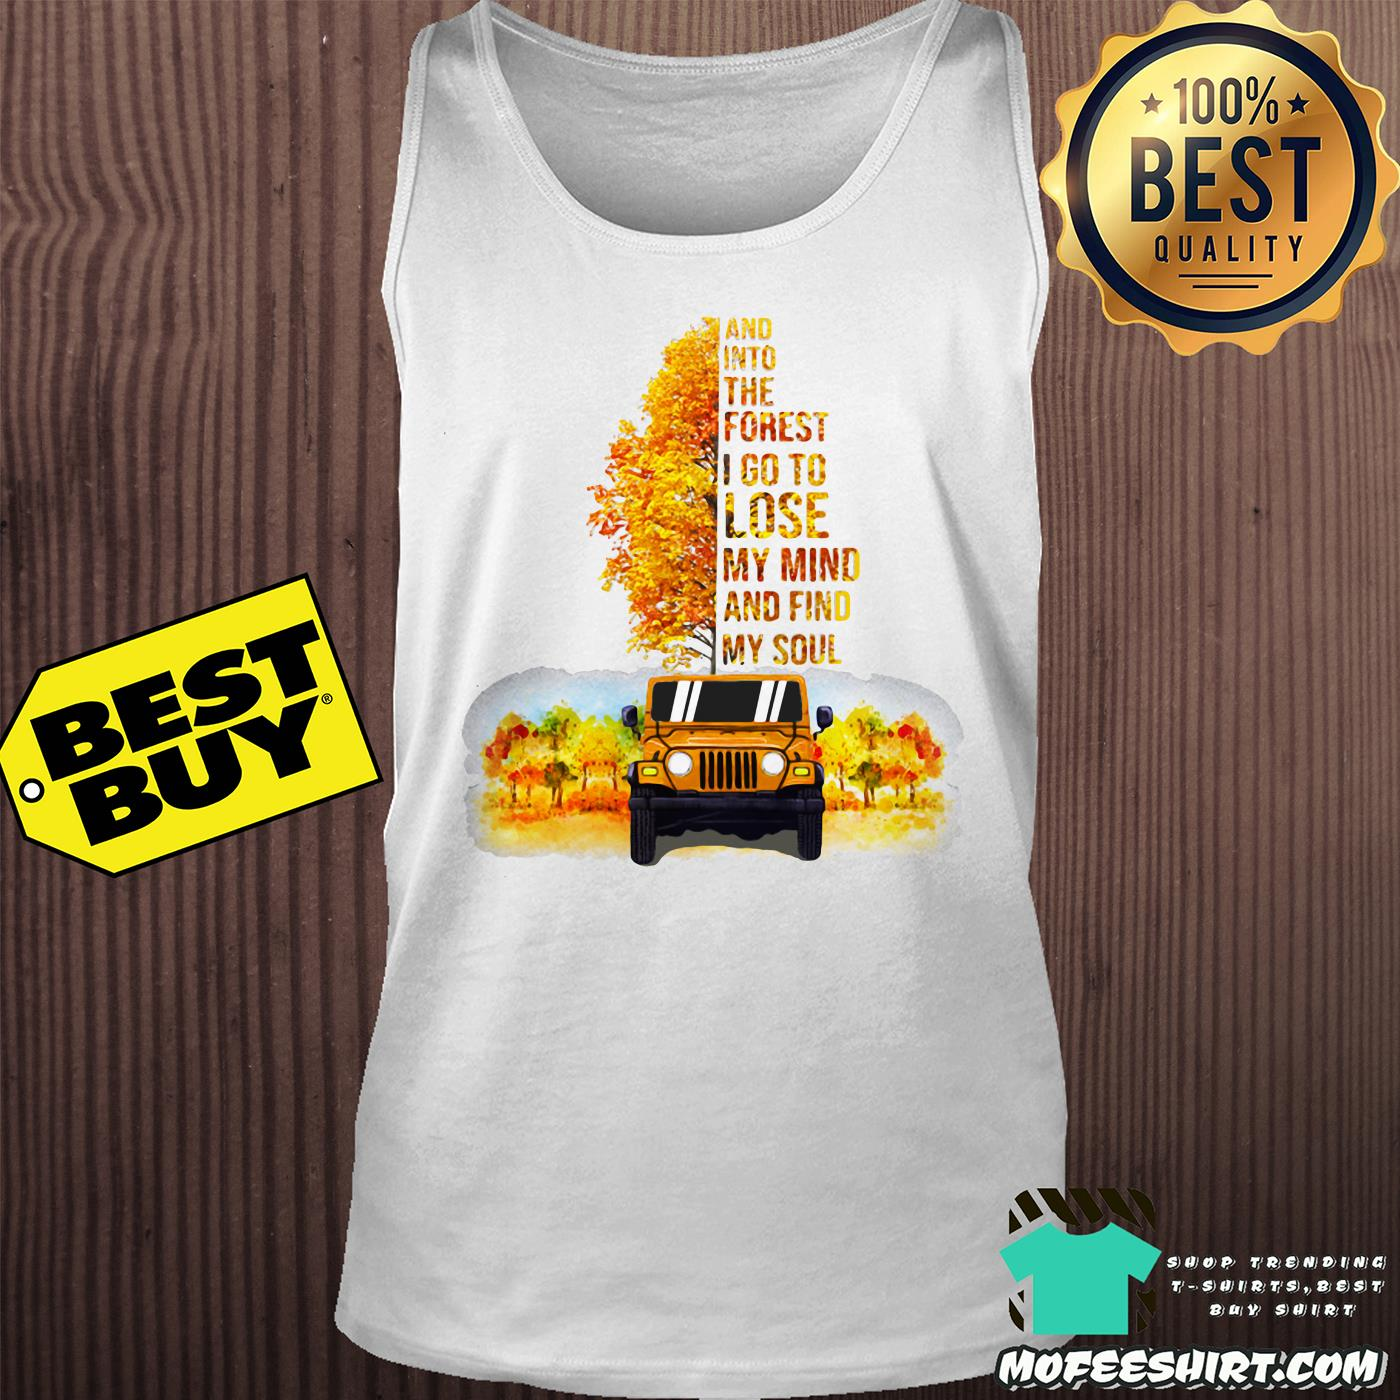 jeep tree and into the forest i go to lose my mind and find my soul autumn shirt tank top - Jeep tree And into the forest I go to lose my mind and find my soul Autumn shirt